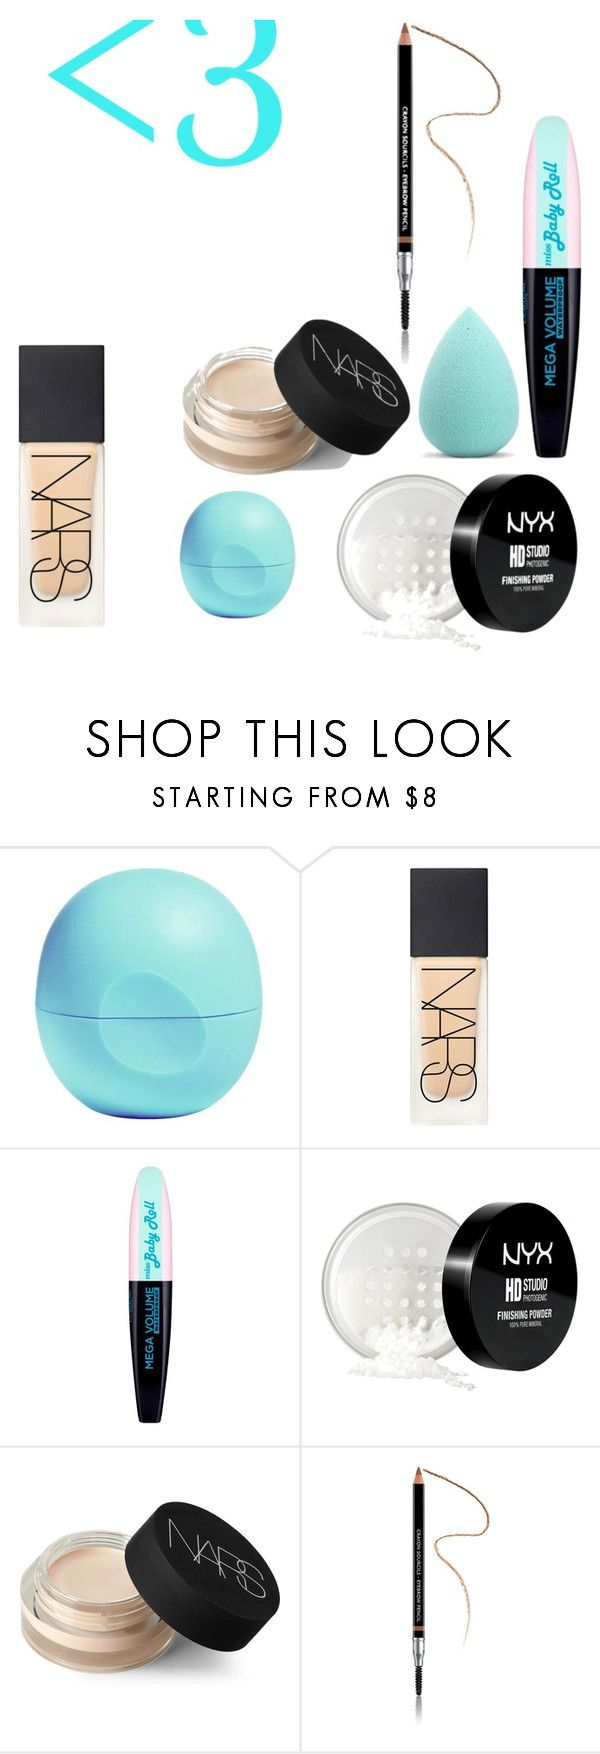 """""""Make-up"""" by coconutlady-573 ❤ liked on Polyvore featuring Eos, NARS Cosmetics, L'Oréal Paris, NYX, Givenchy and My Makeup Brush Set"""